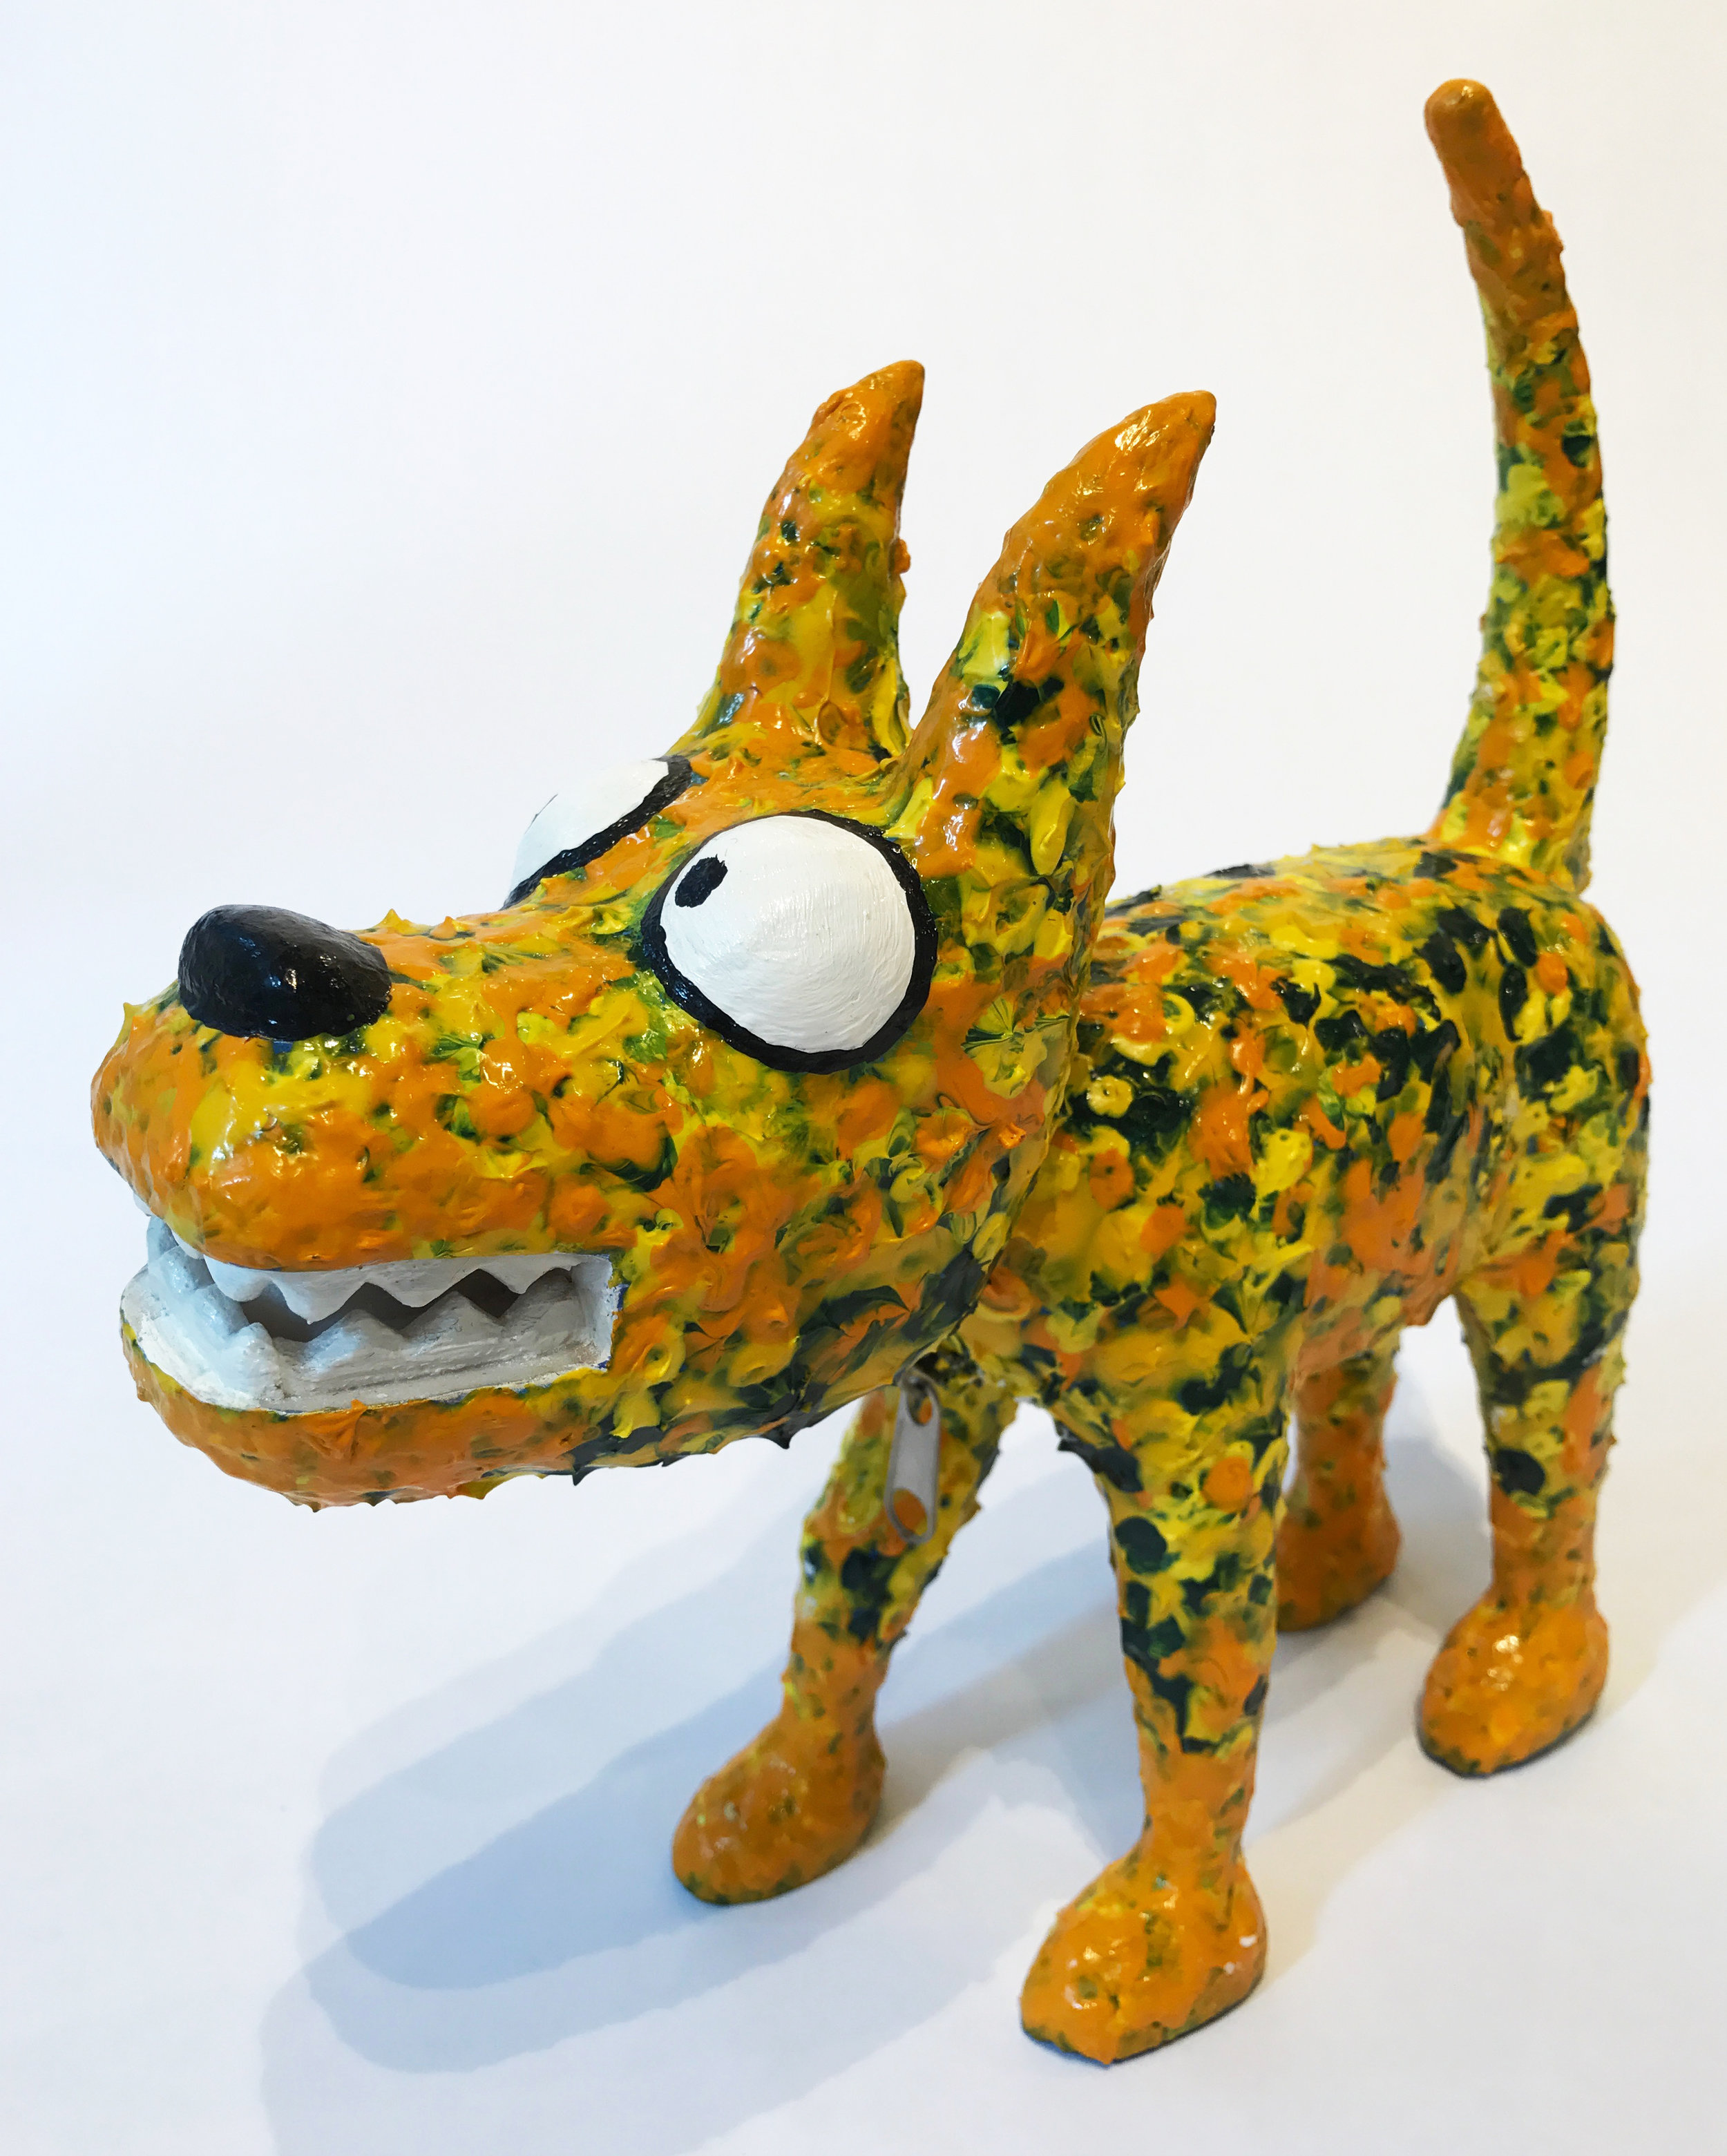 """Dog 10"" Sculpture, unique item 27 x 24 x 9 cm 2010"